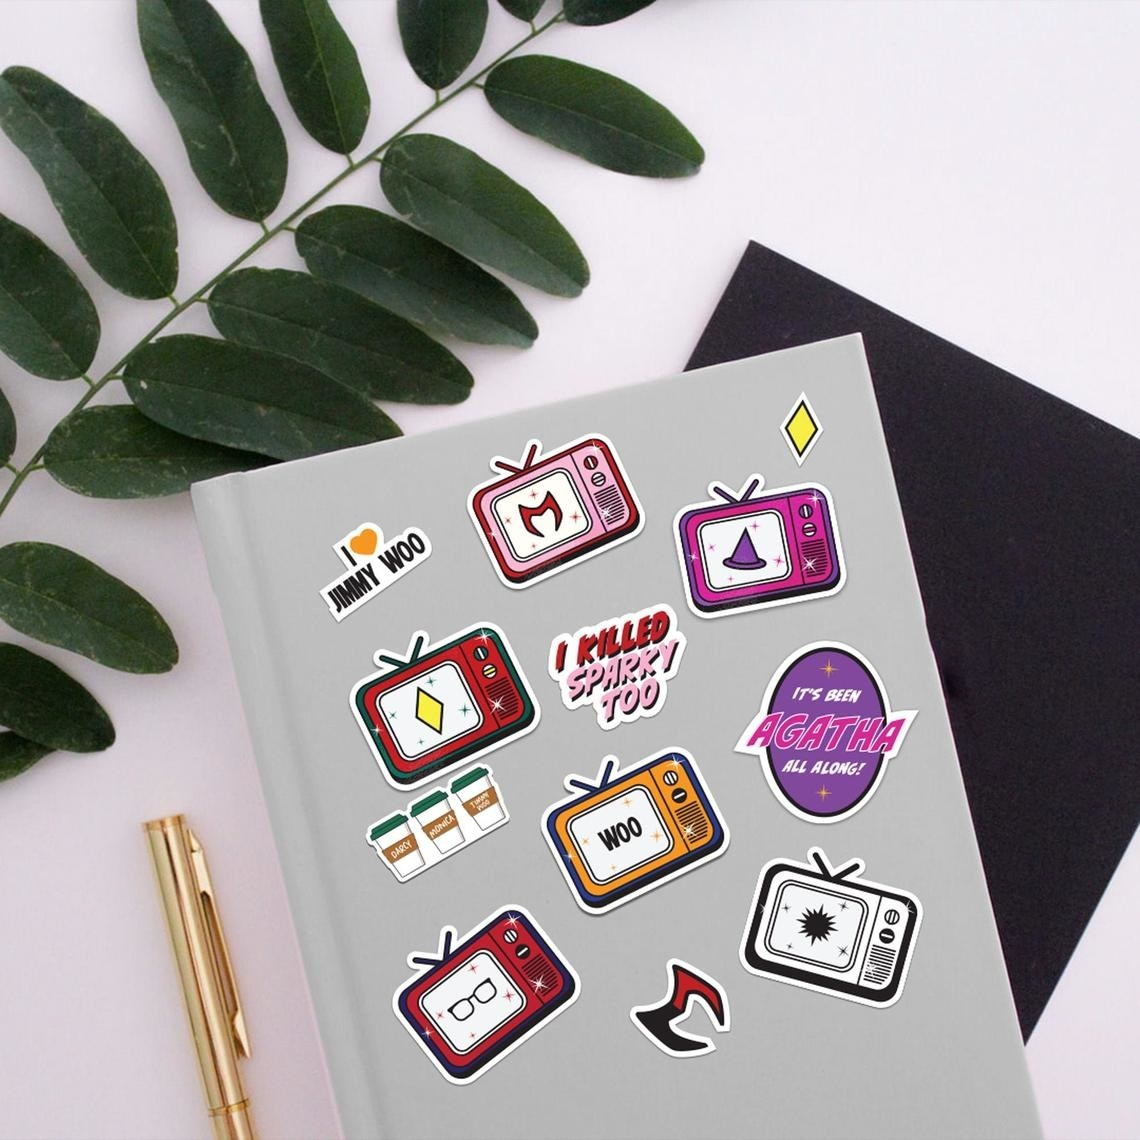 The stickers on a notebook